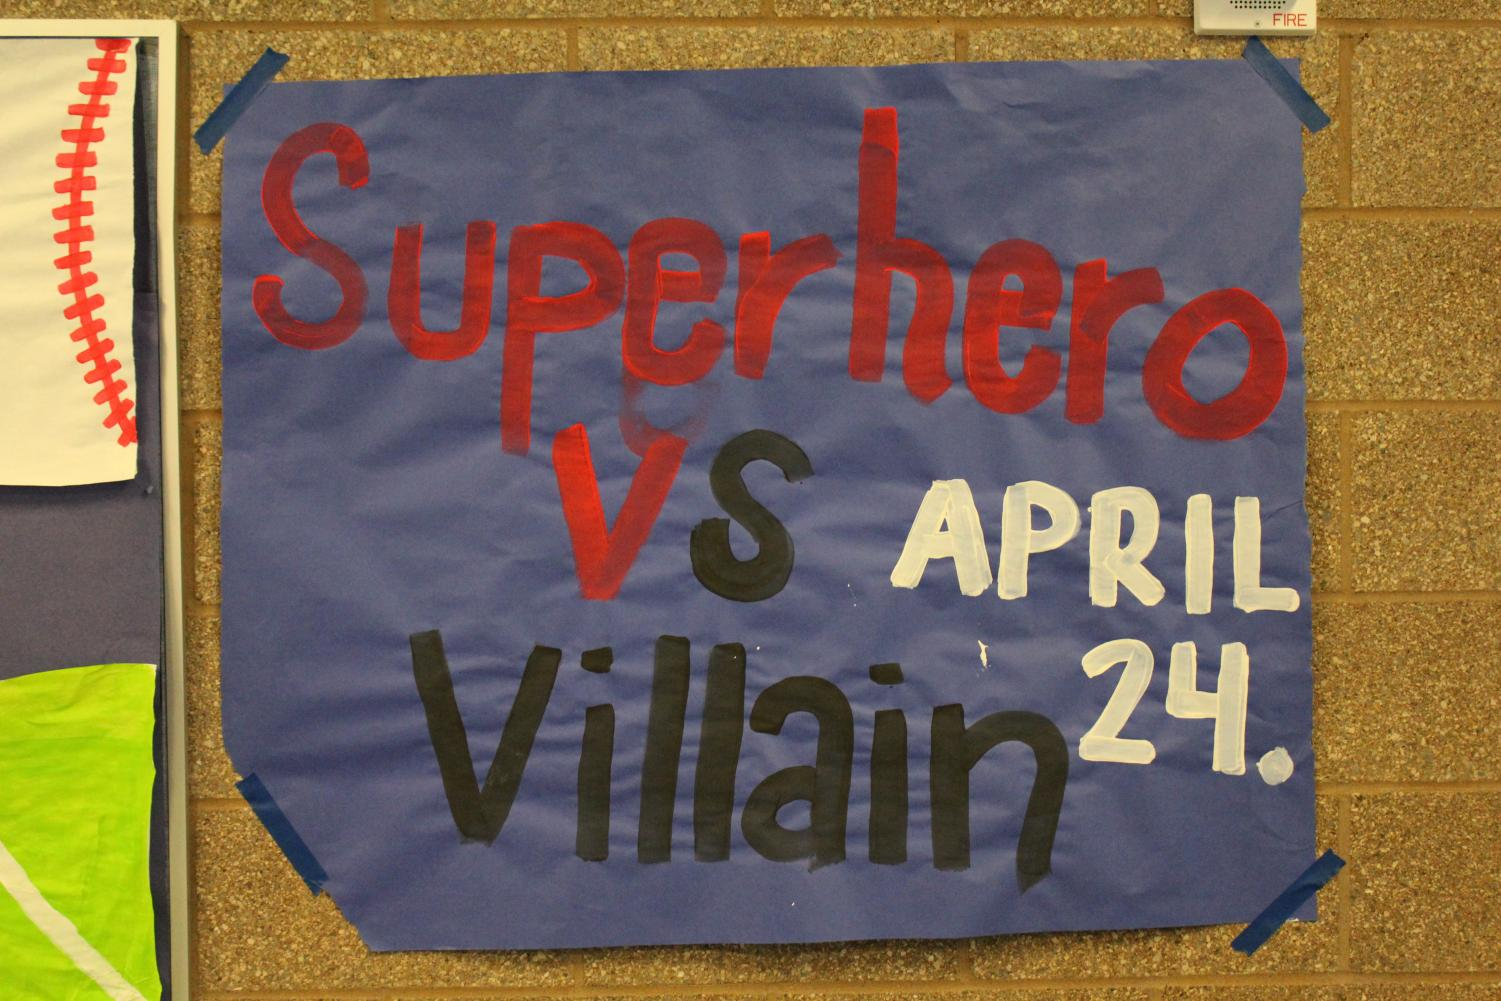 A poster advertising Tuesday's spirit theme